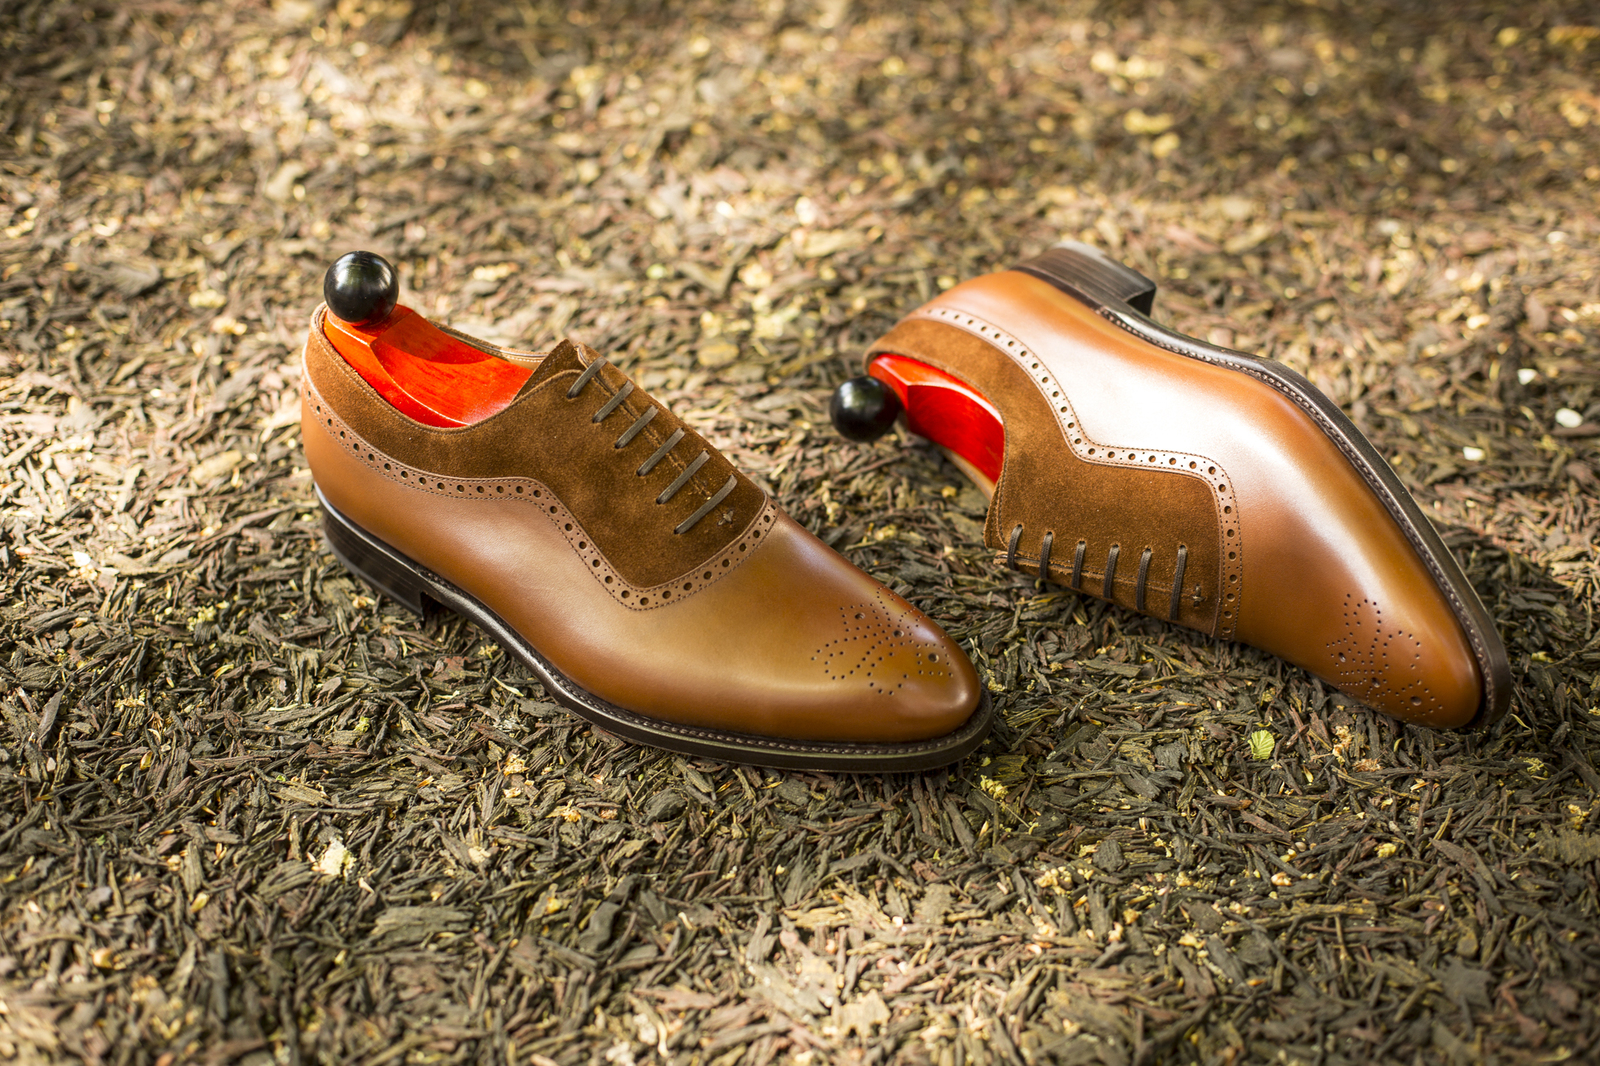 Handmade Men's Tan & Brown Brogues Style Dress/Formal Leather & Suede Shoes